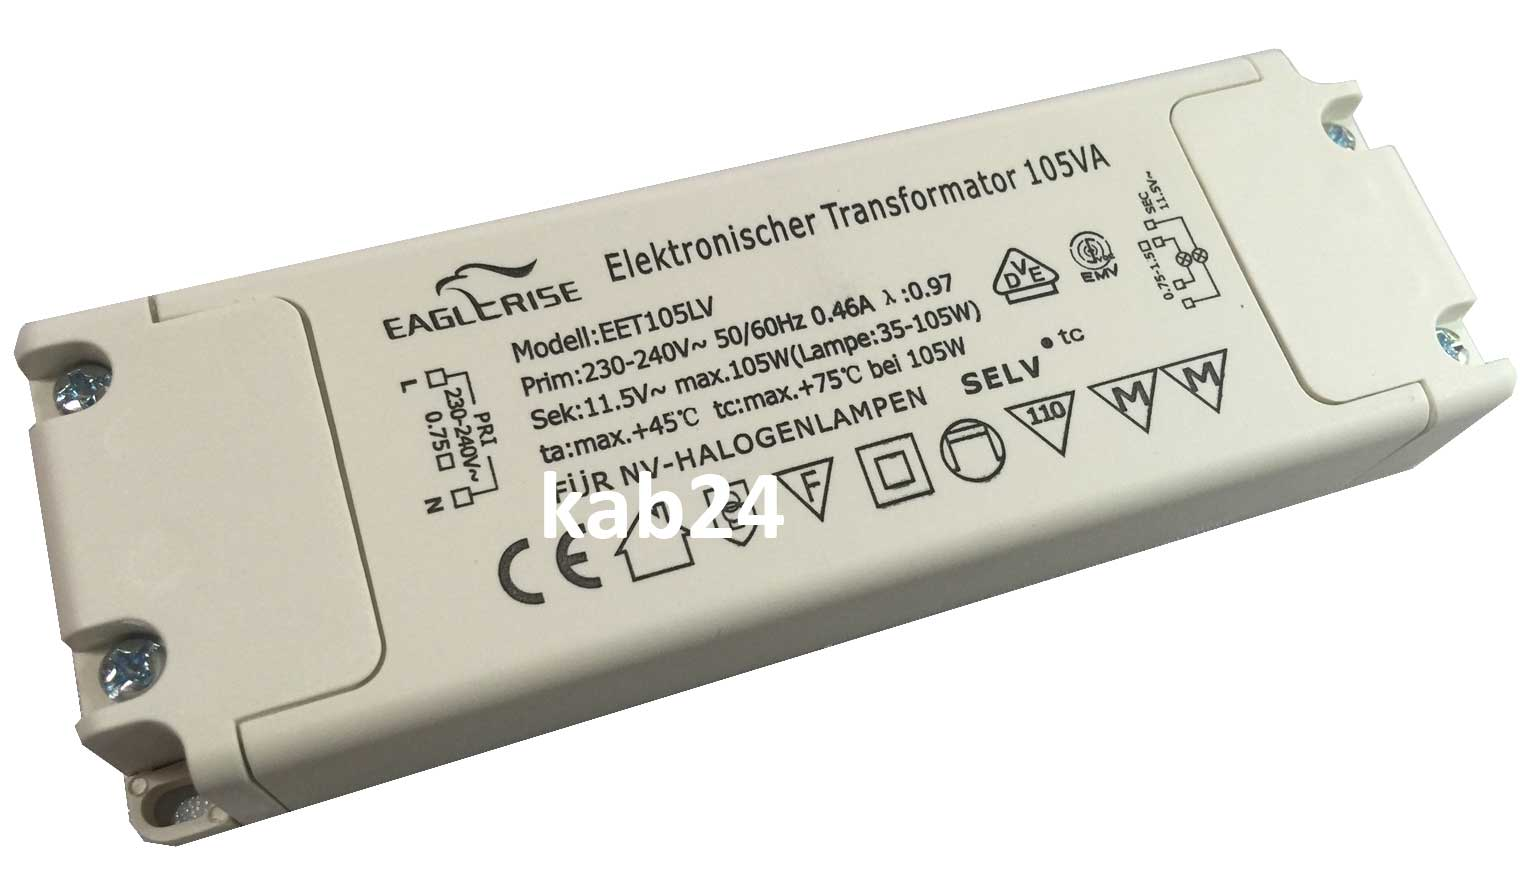 Elektronischer Transformator Eaglerise Eet105lv Halogen Transformator 35 105 Watt